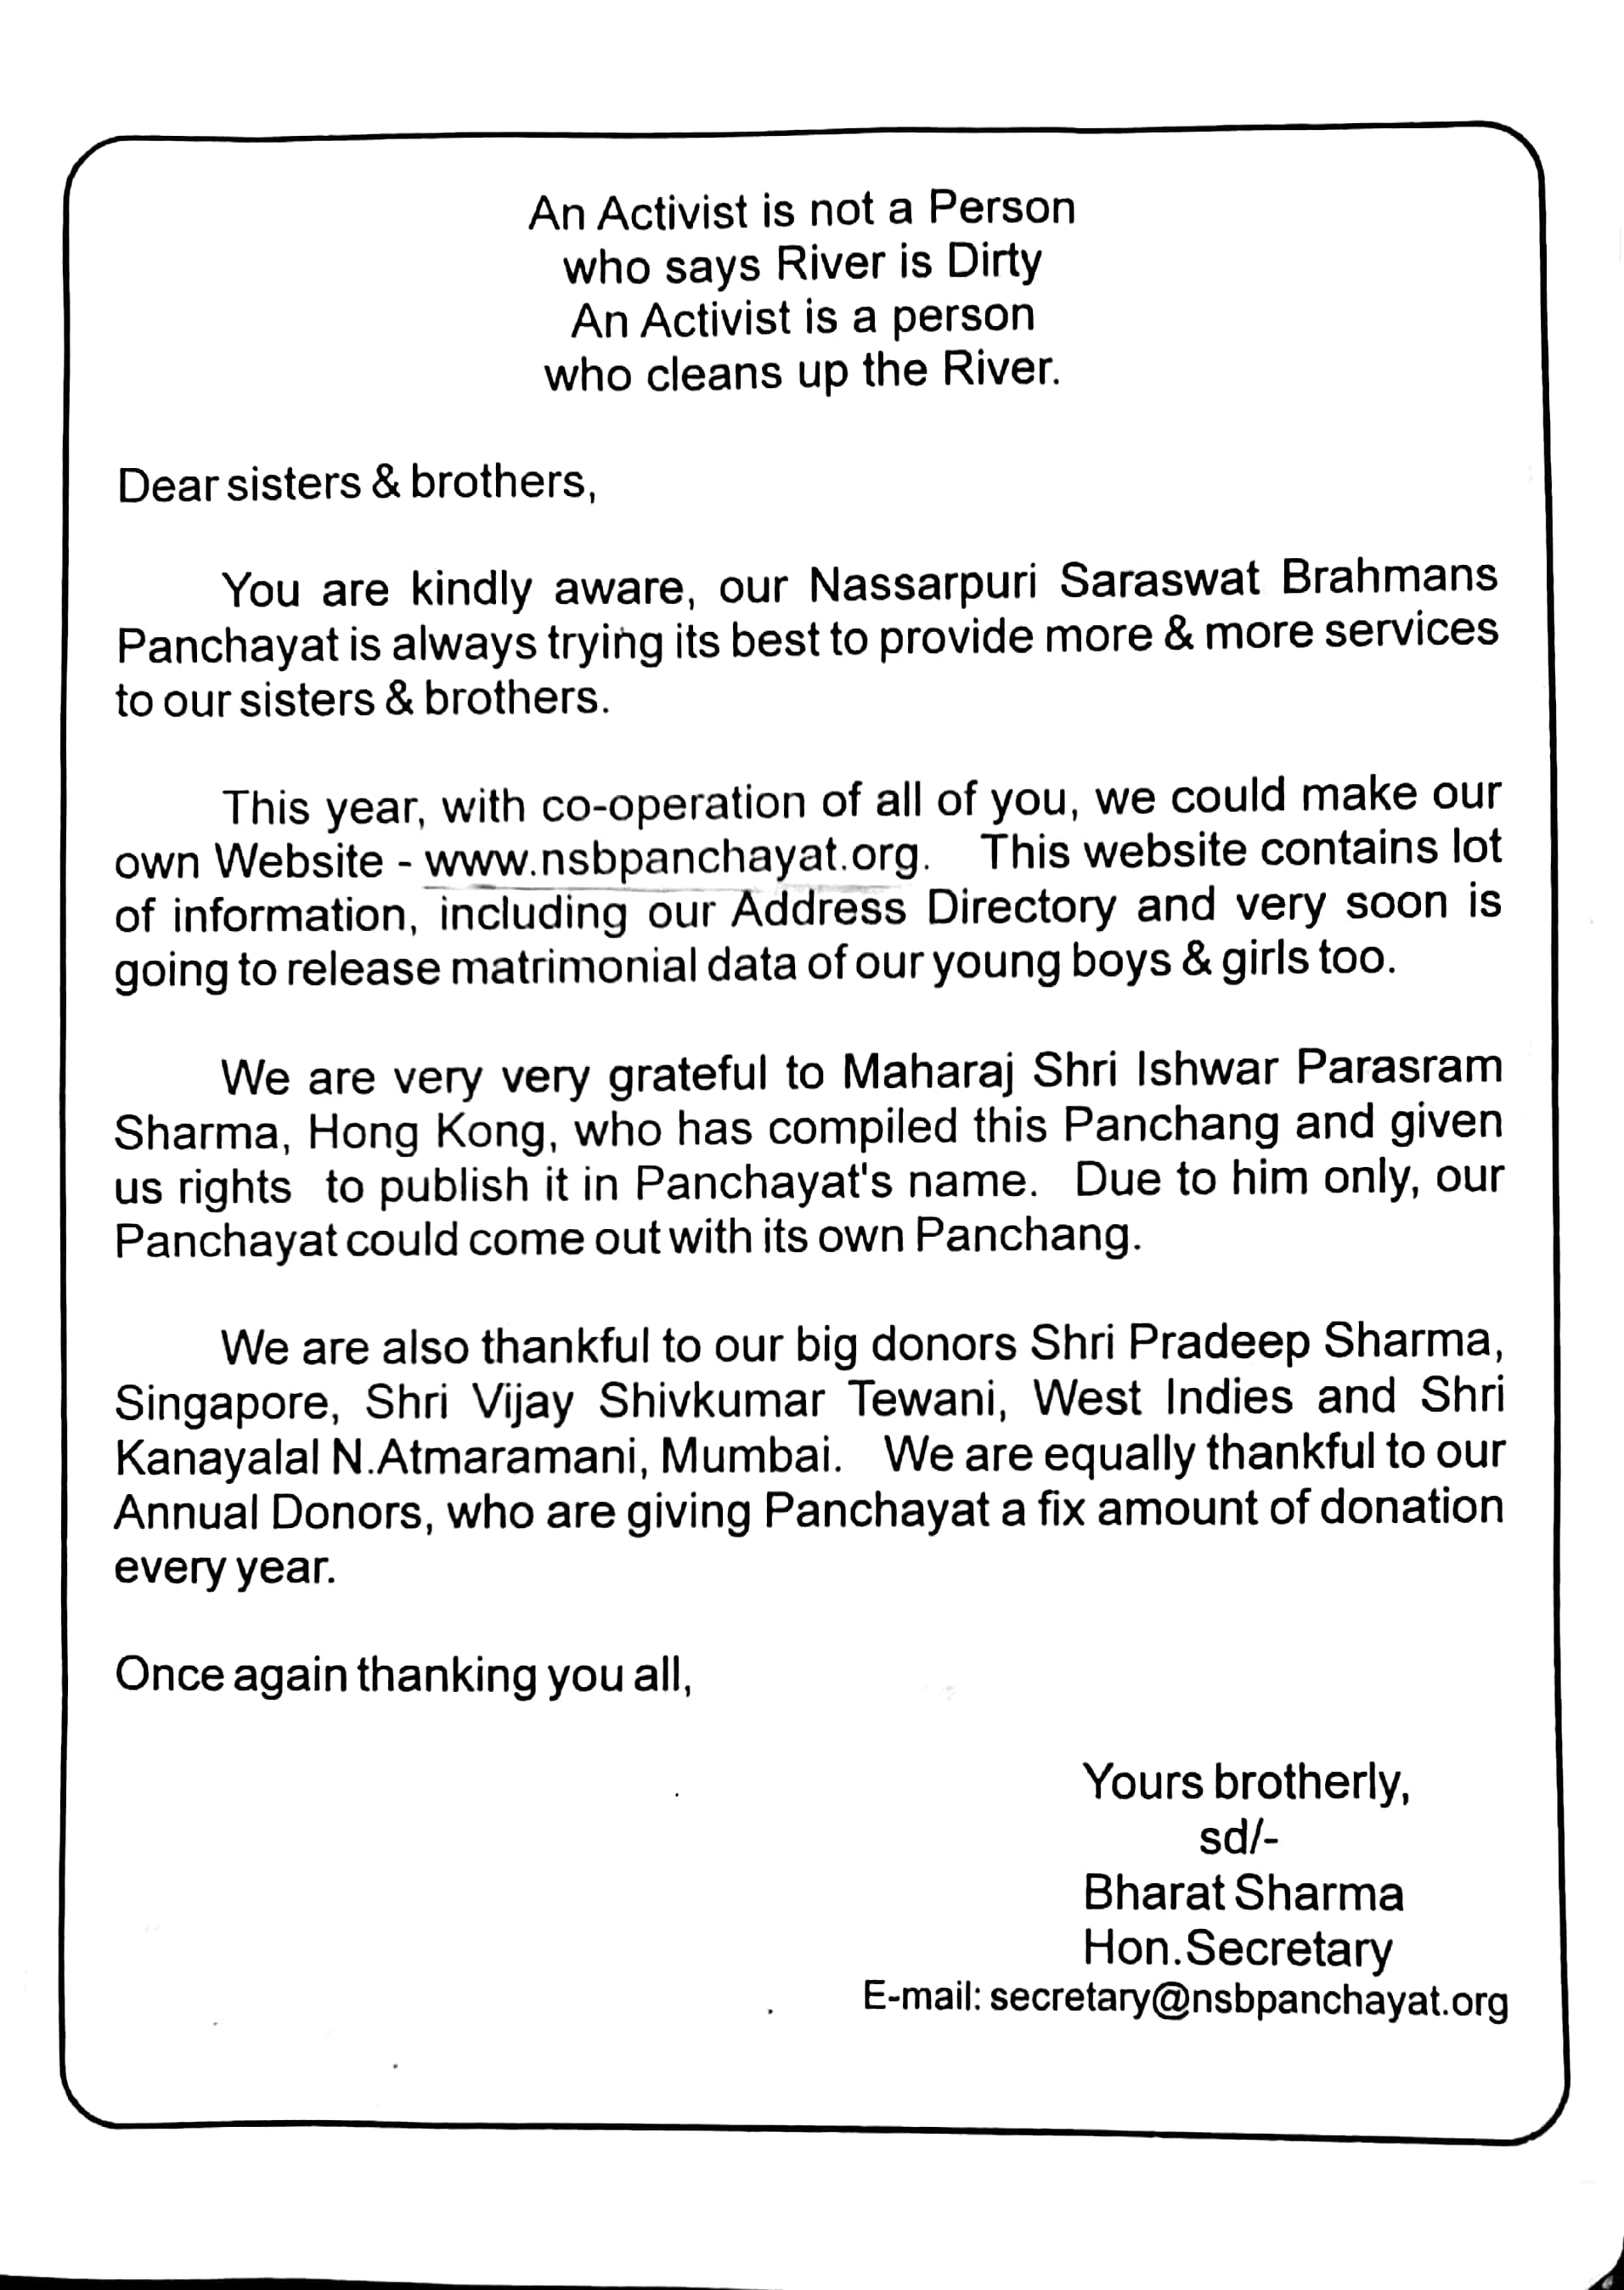 Letter's of appreciation and thanks to Ishwar Maharaj, Hong